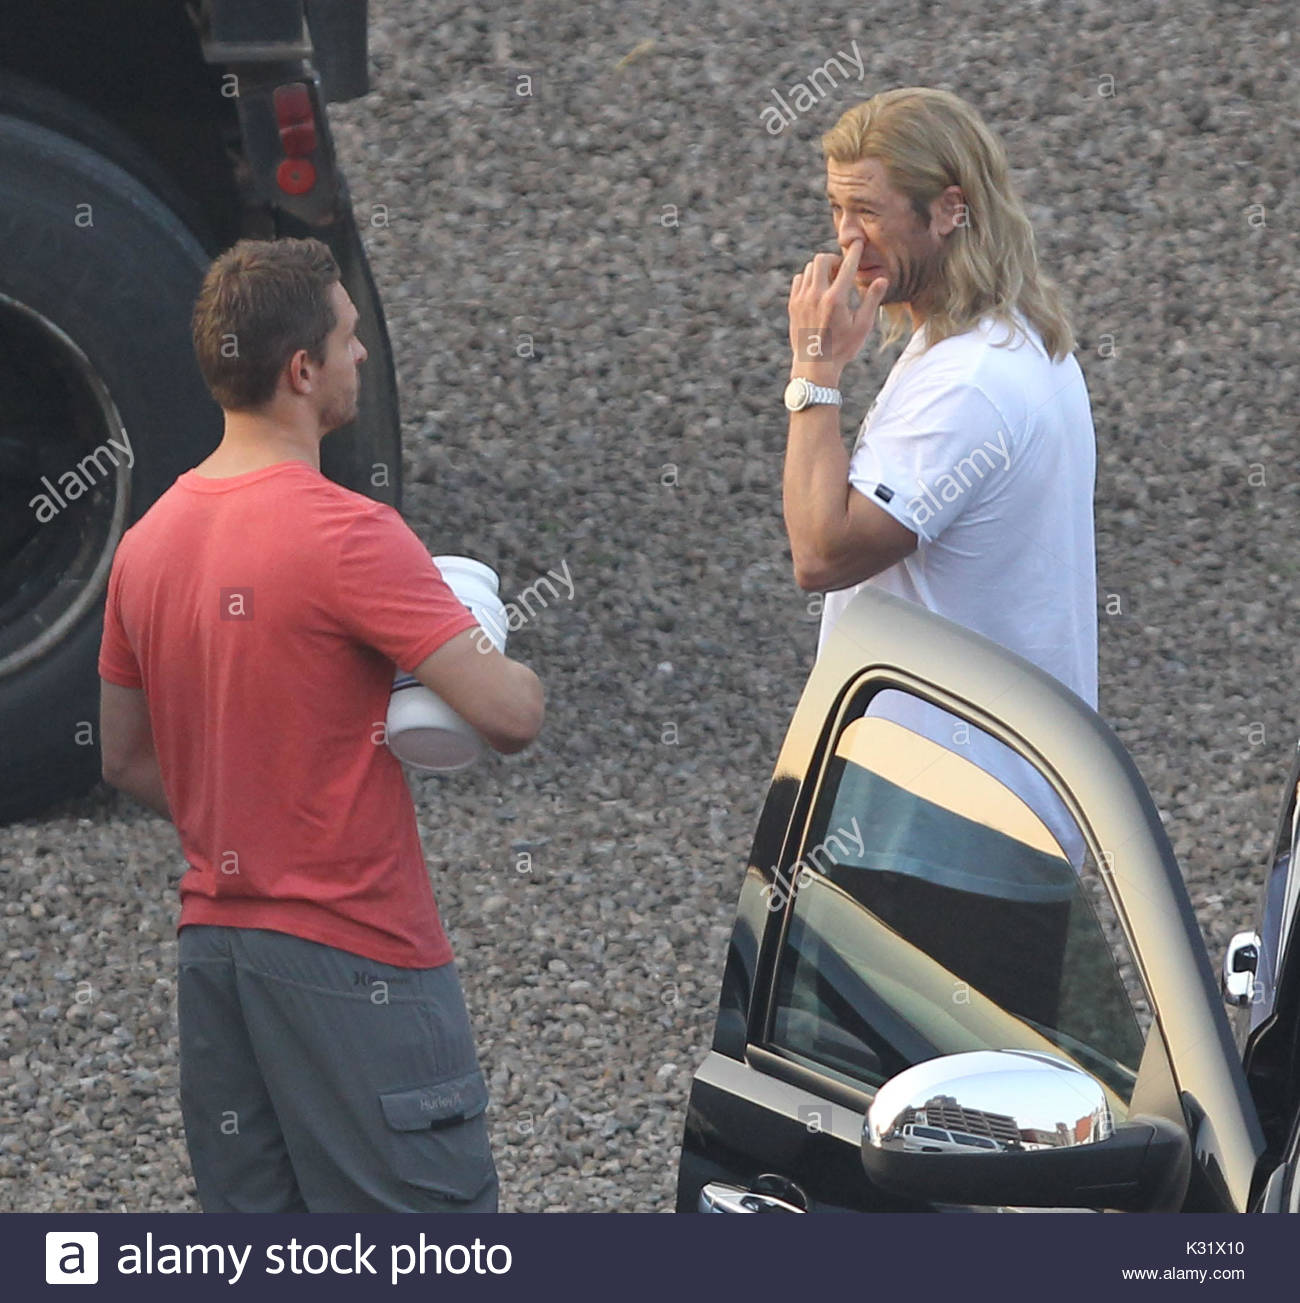 Chris Hemsworth Picks A Booger In Front Of A Girl Assistant At 7am On The  Set Of U0027The Avengersu0027 Filming In Cleveland. The Action Star Showed That It  Was ...